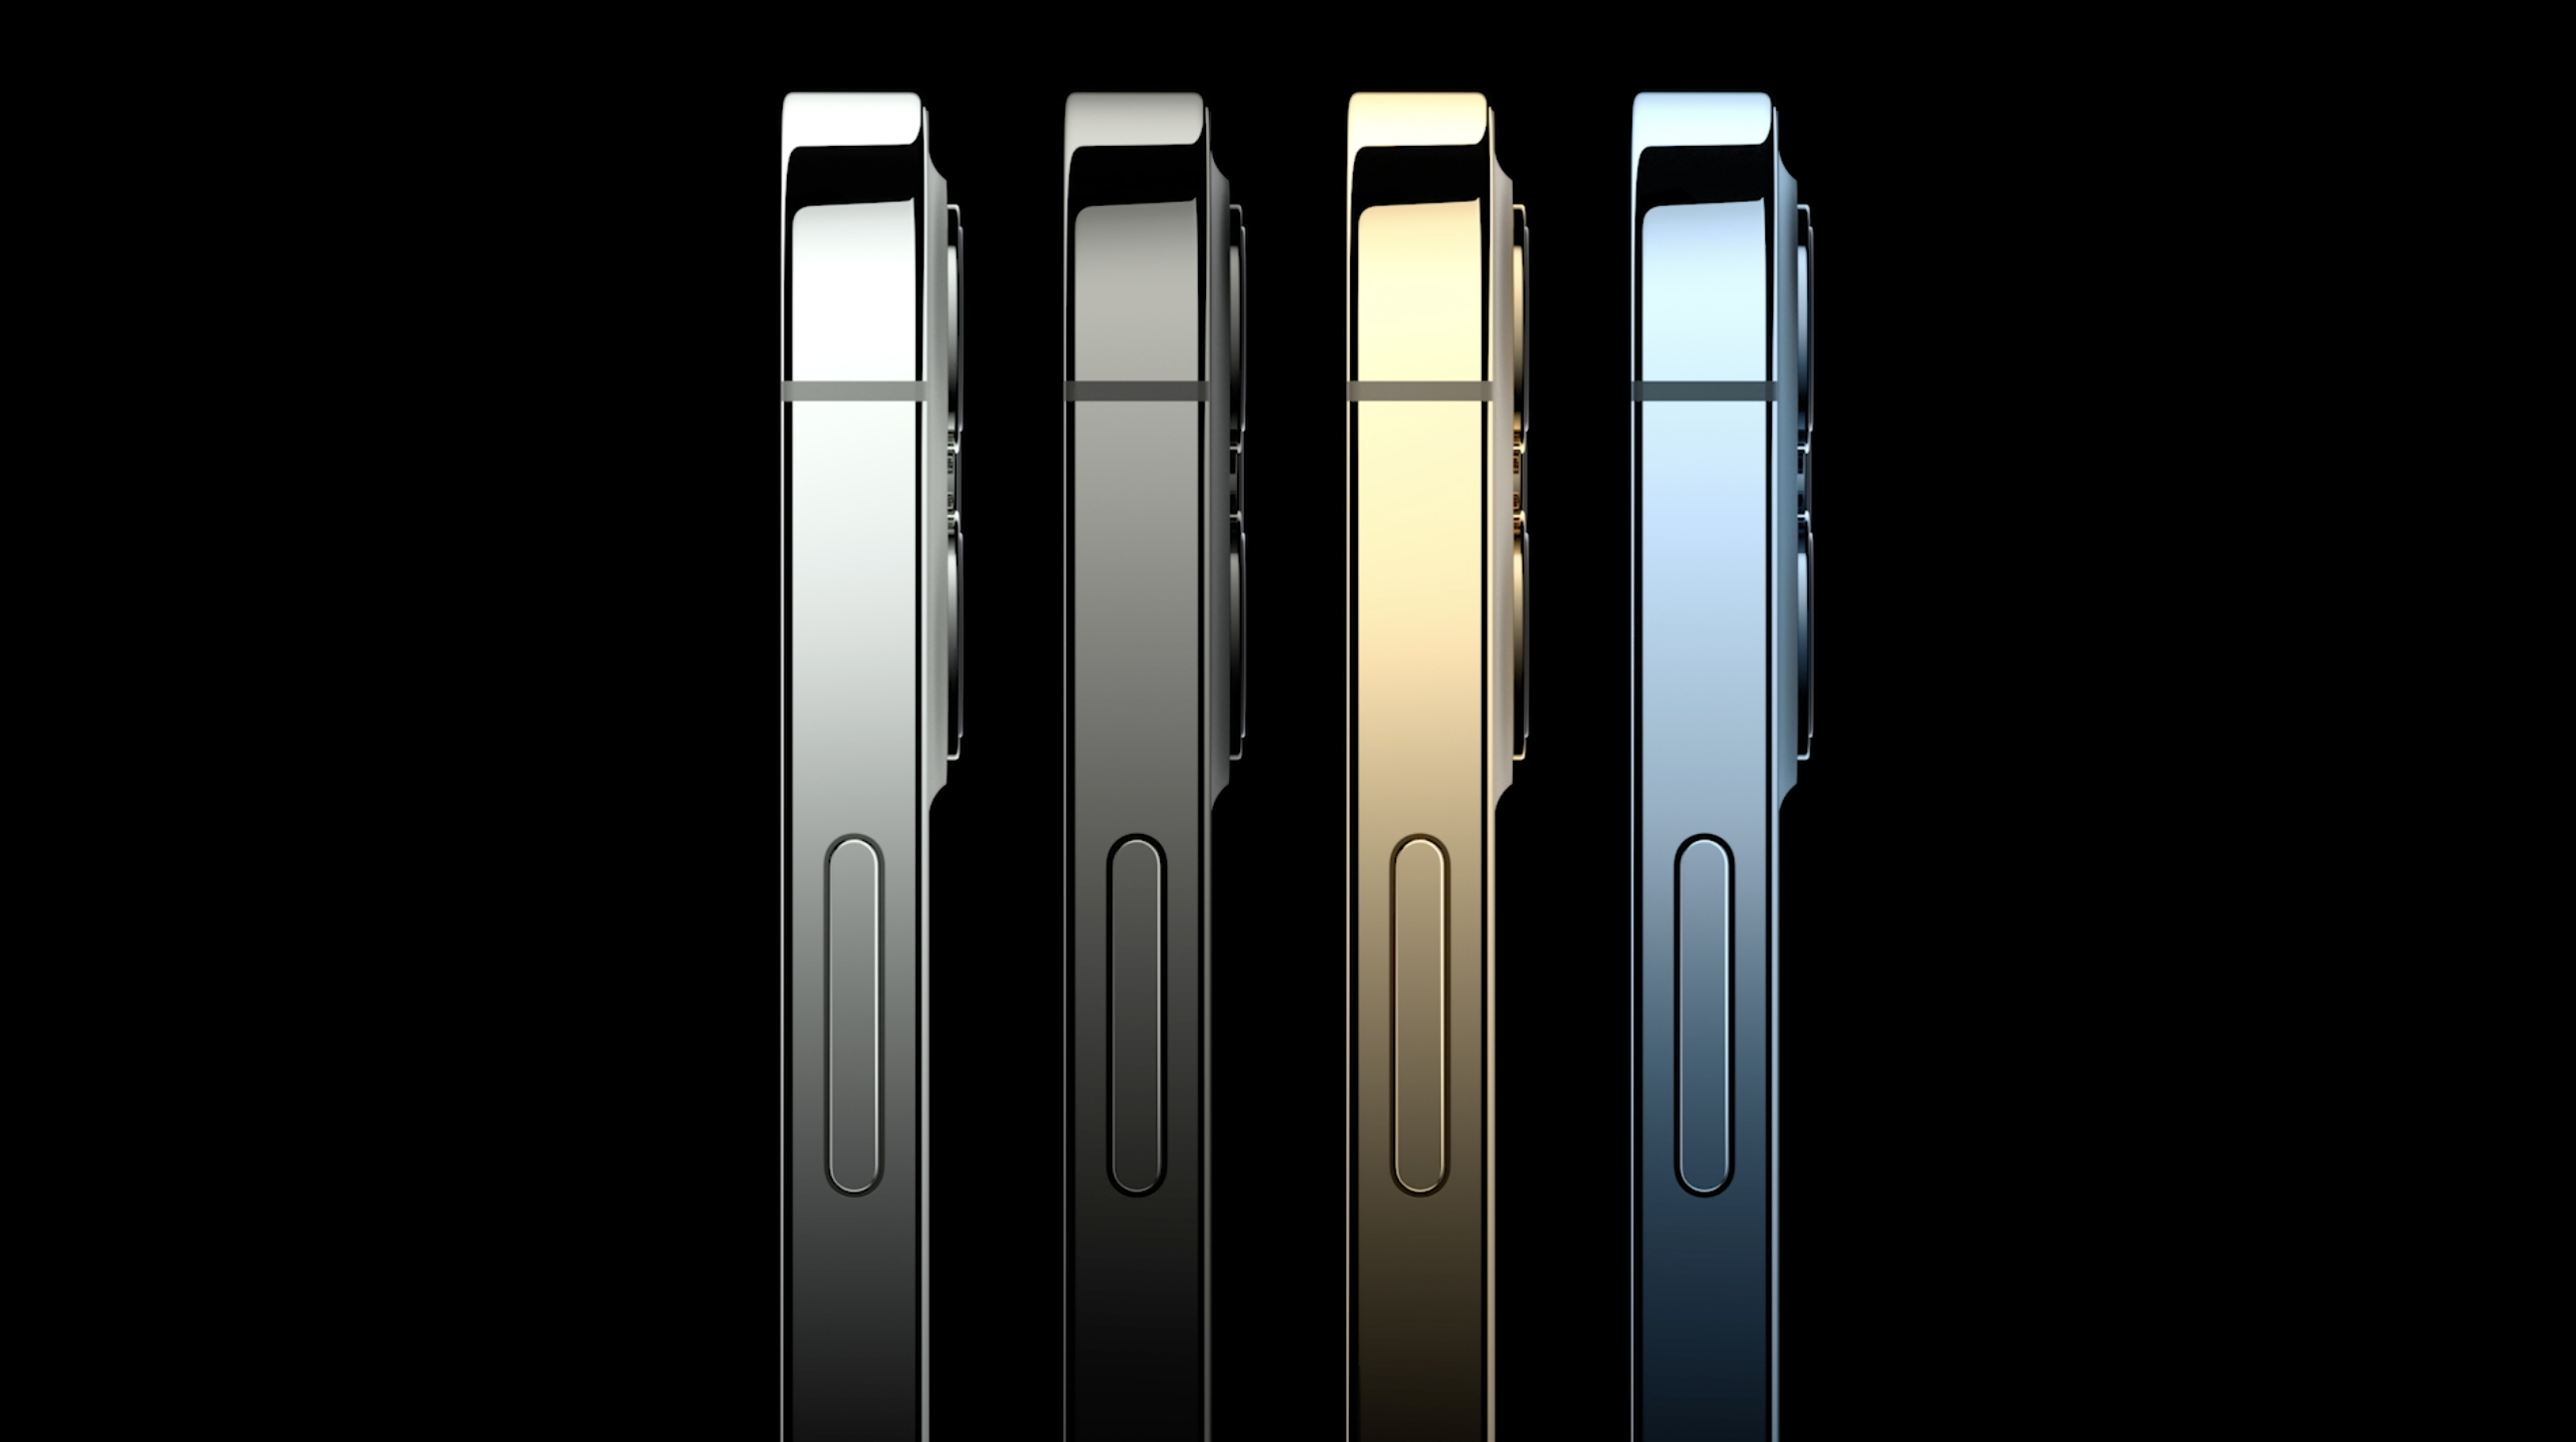 iphone 12 release date features colors etc 9to5mac iphone 12 release date features